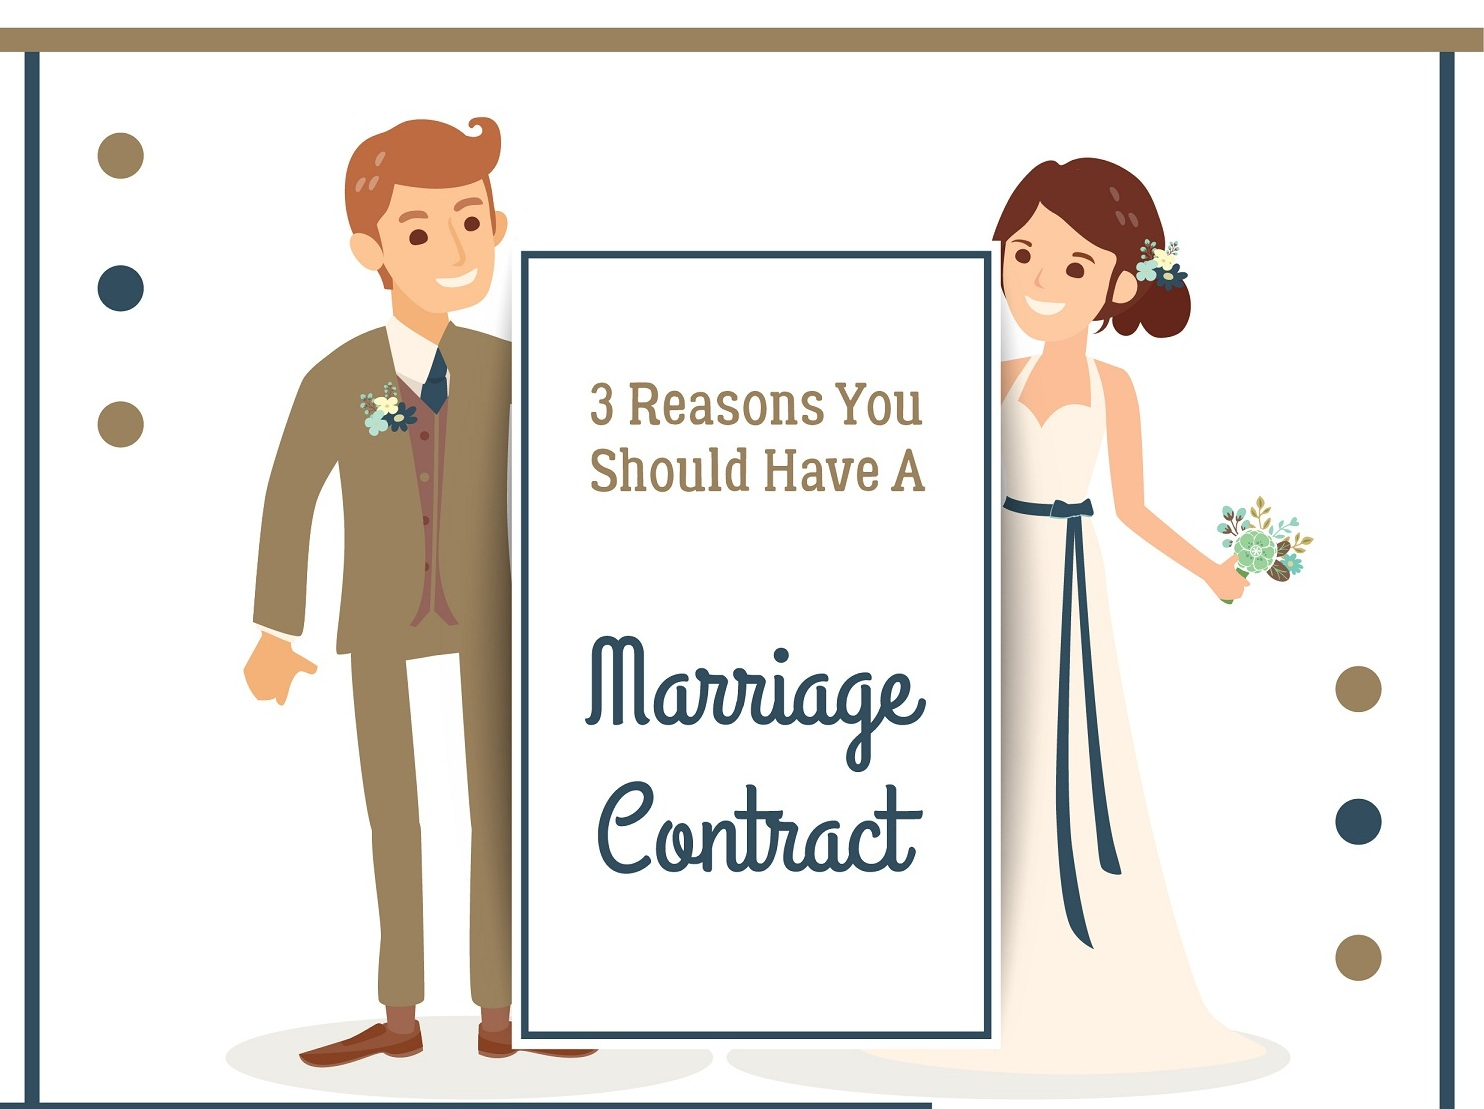 3 reasons you shopuld have a marraige contract